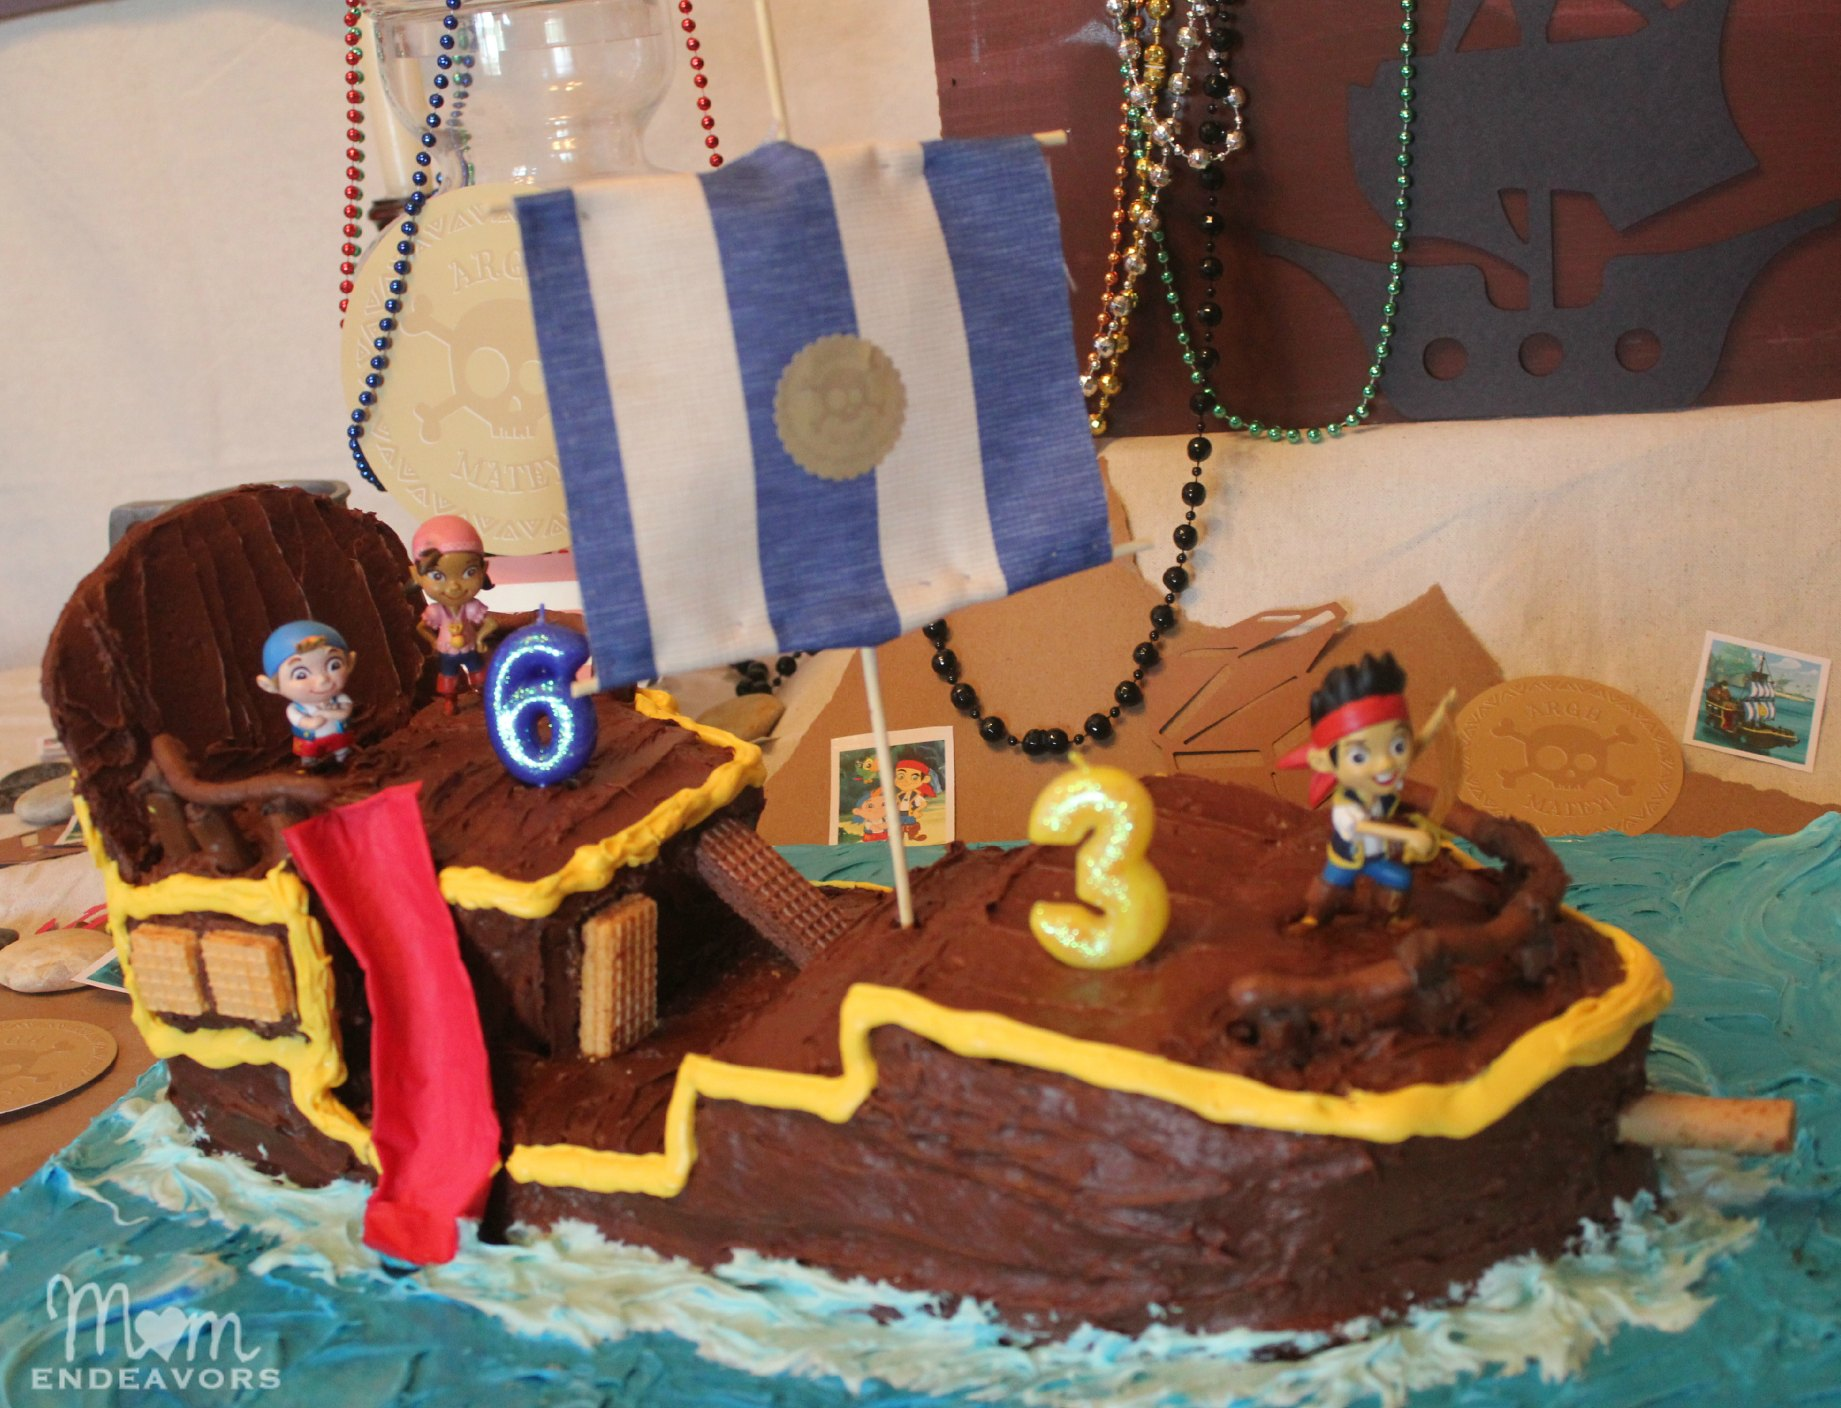 DIY Bucky Pirate Ship Cake Tutorial Jake and the Never Land Pirates